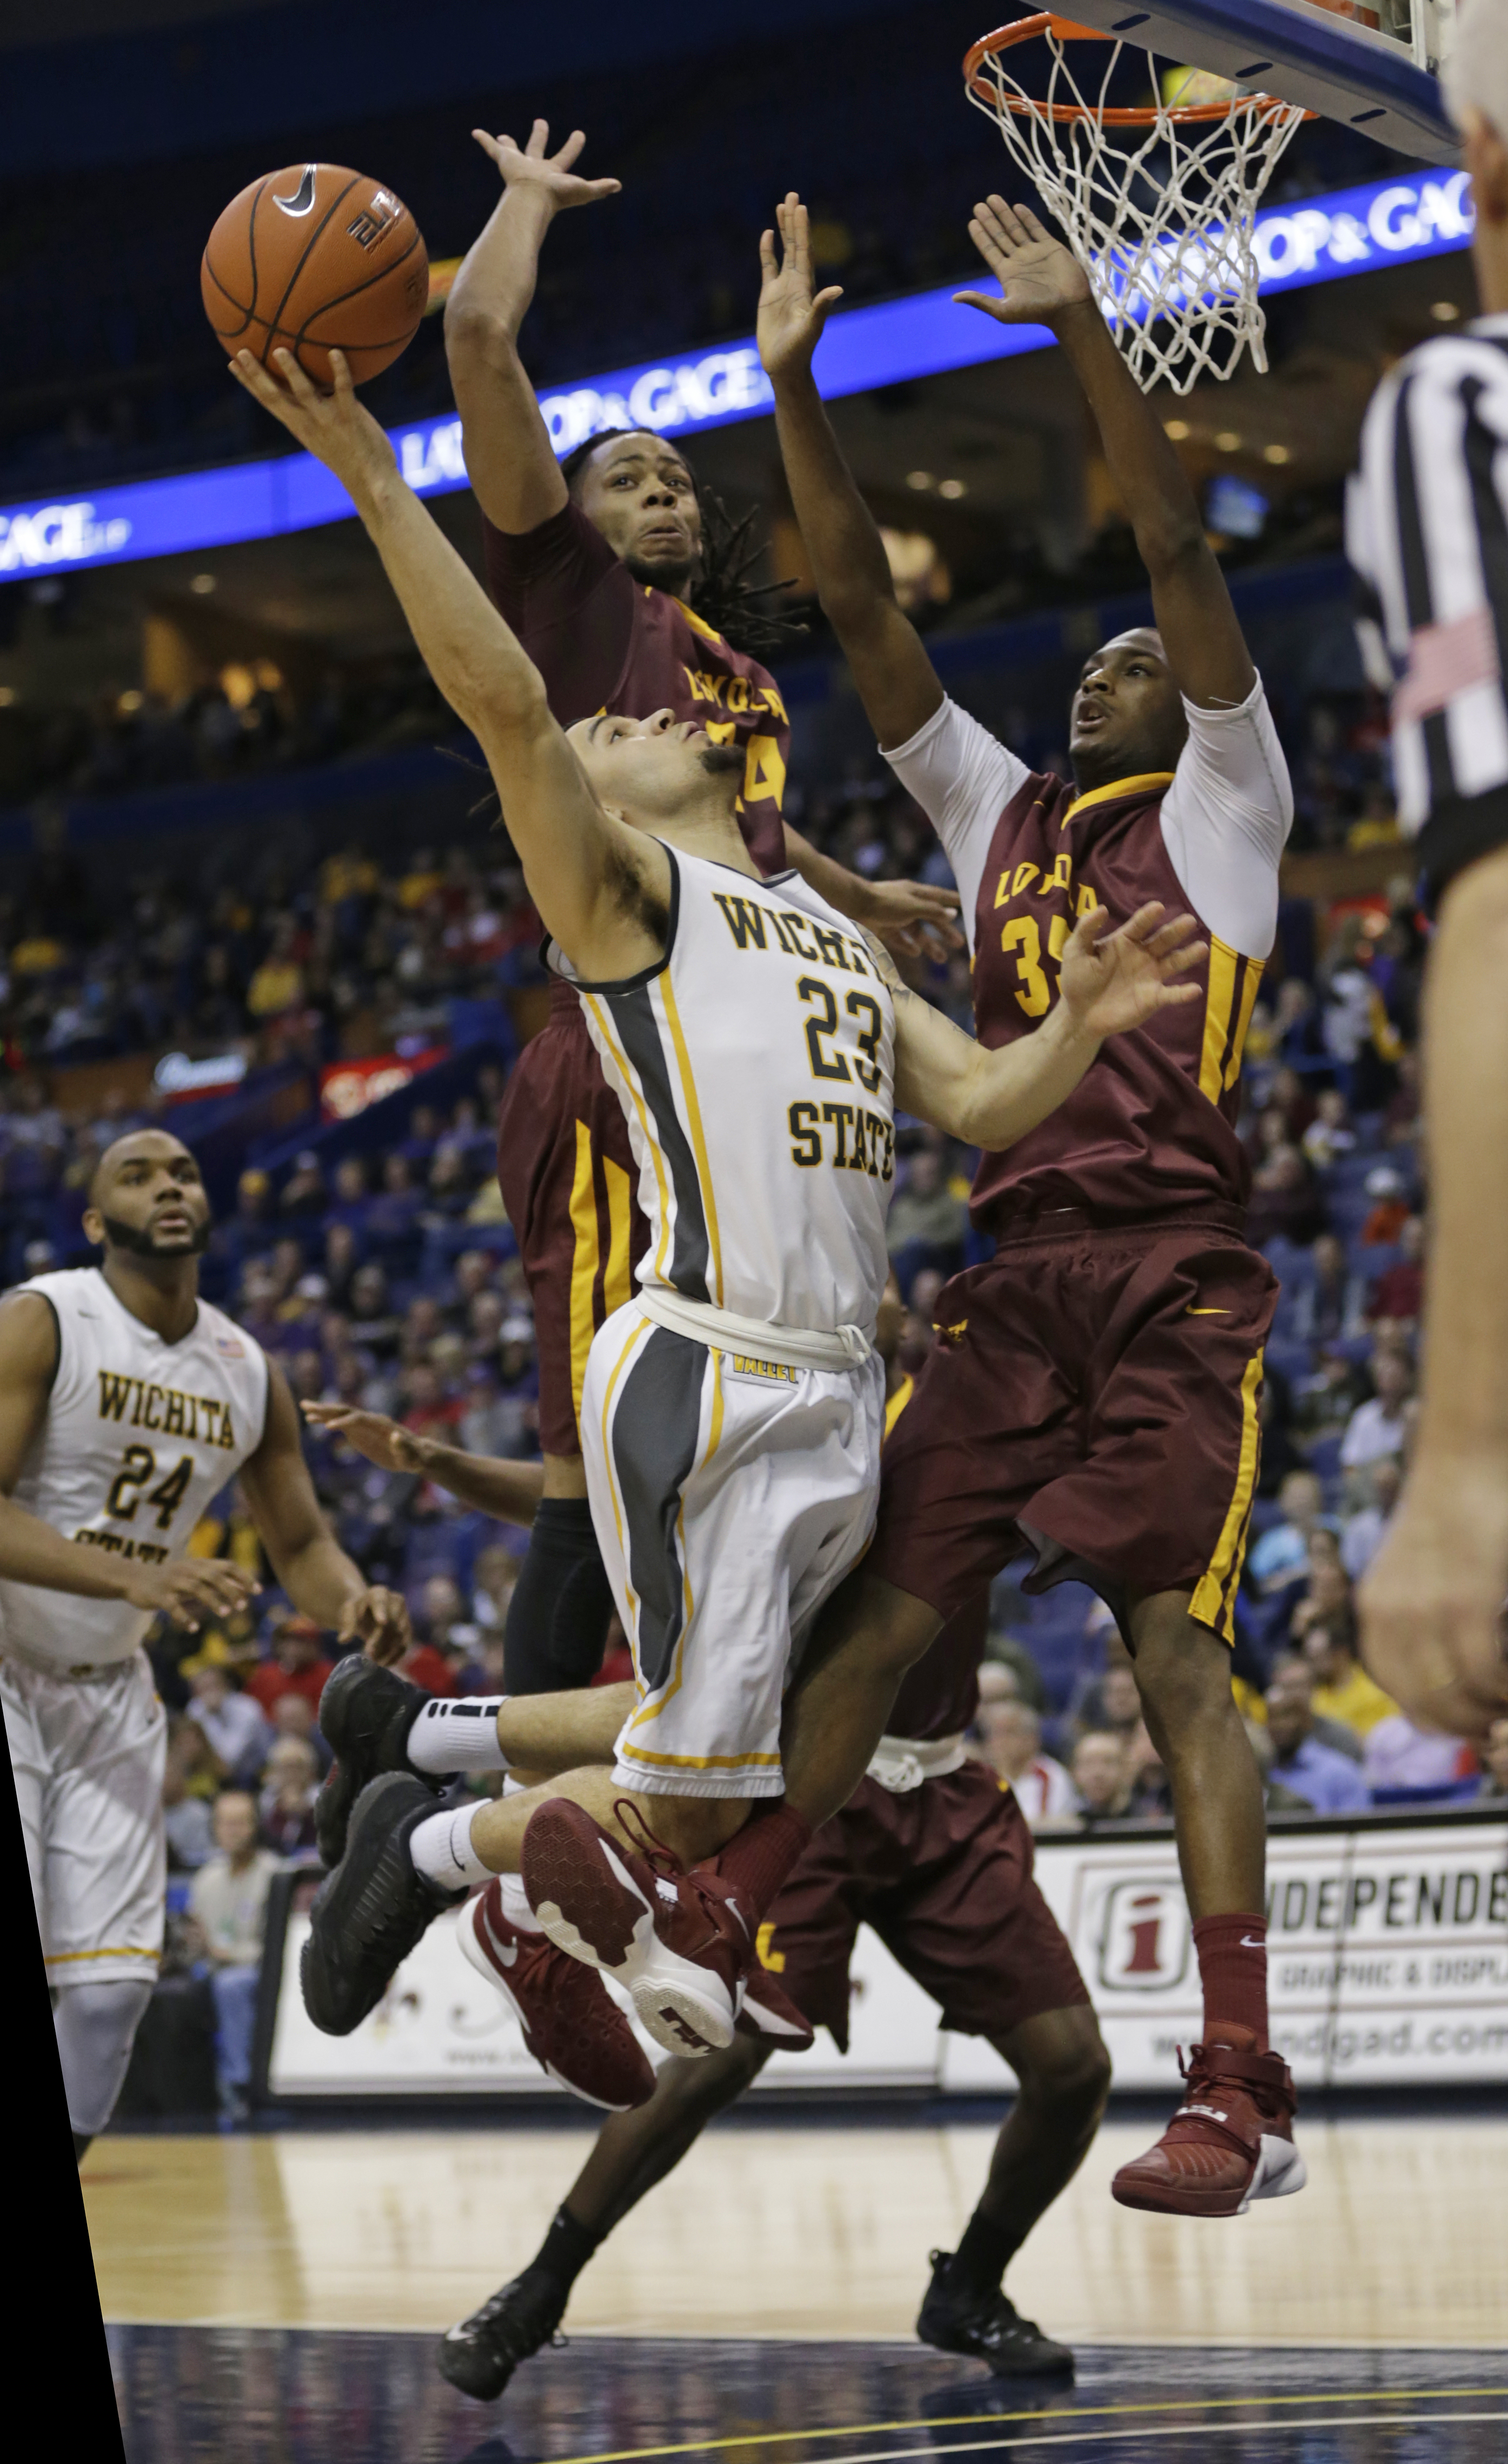 FILE - In this March 4, 2016, file photo, Wichita State's Fred VanVleet (23) goes to the basket as Loyola Chicago's Montel James (24) and Milton Doyle (35), right, defend during the second half of an NCAA college basketball game in the quarterfinals of th